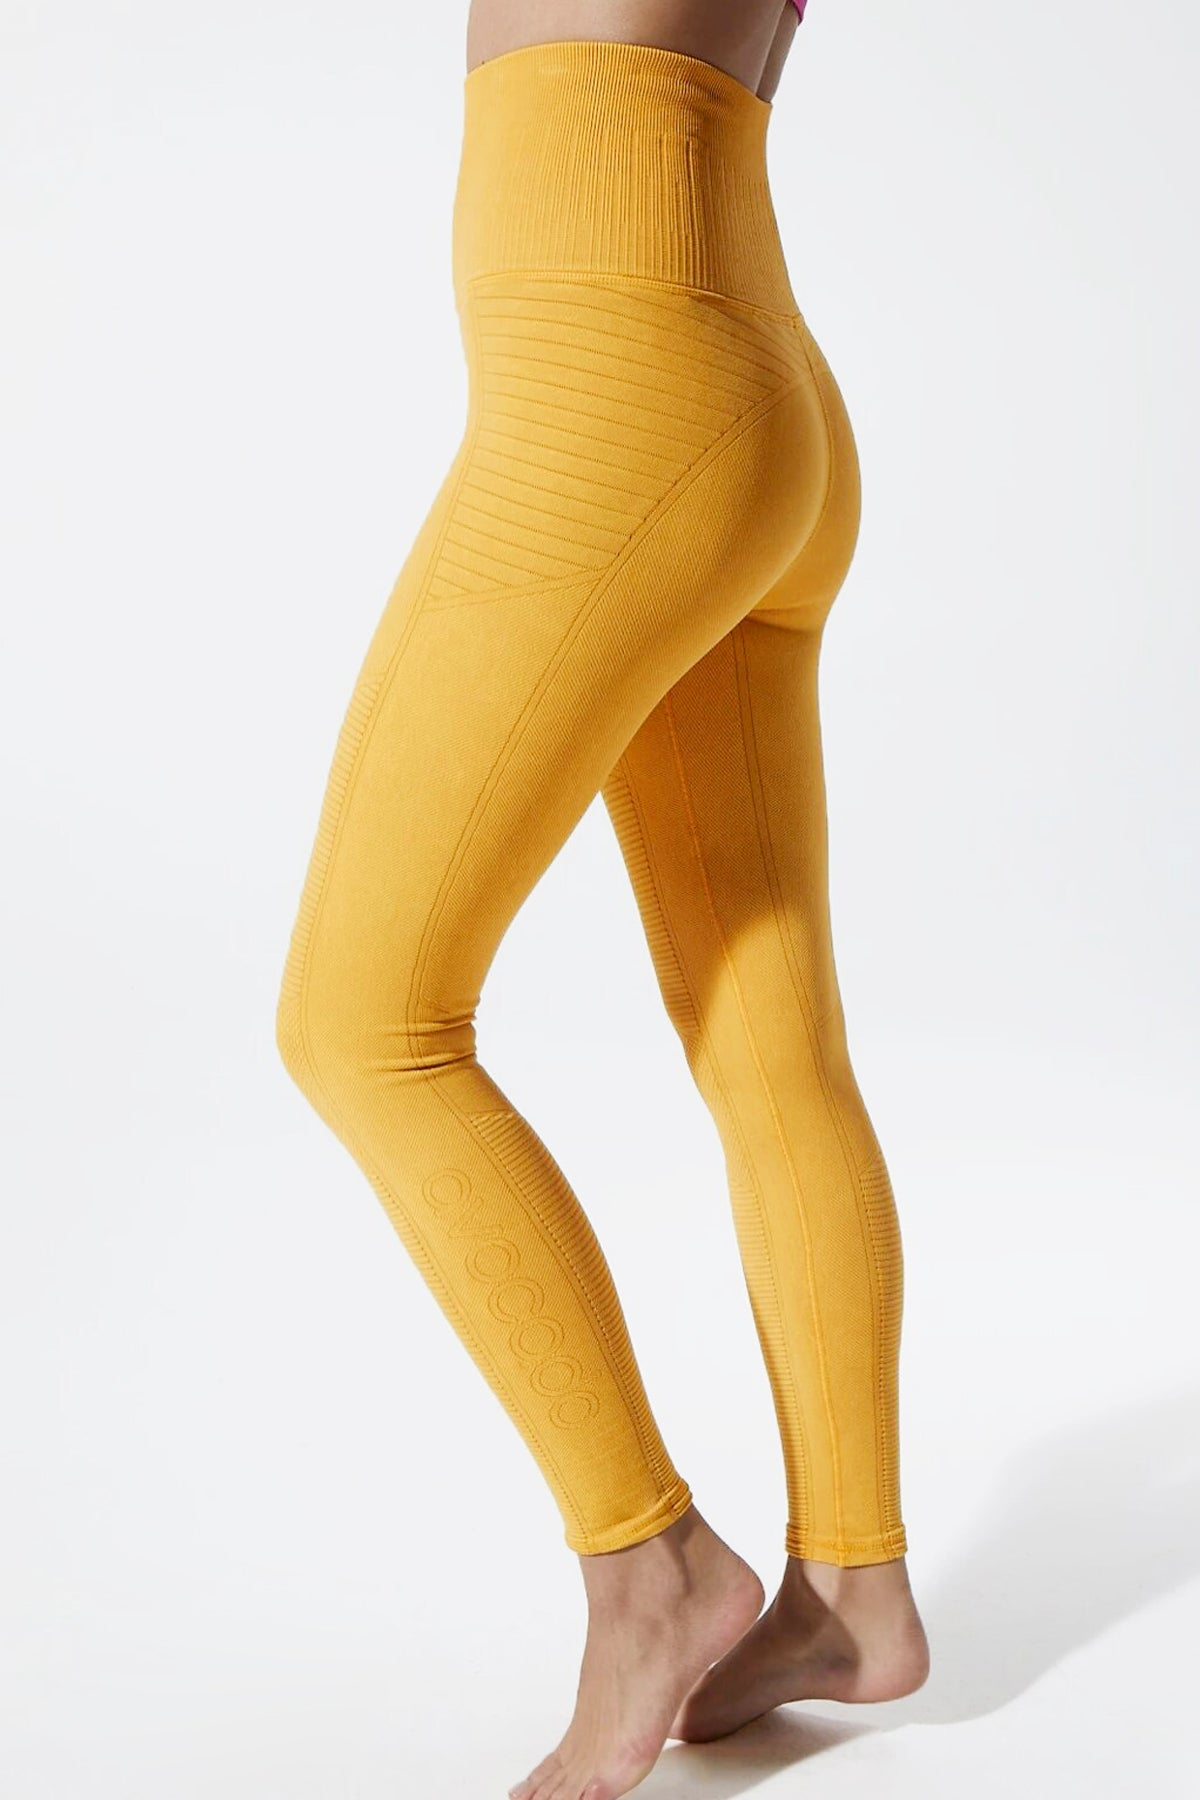 Vintage Phoenix Fire Legging in Vintage Lemon Chrome